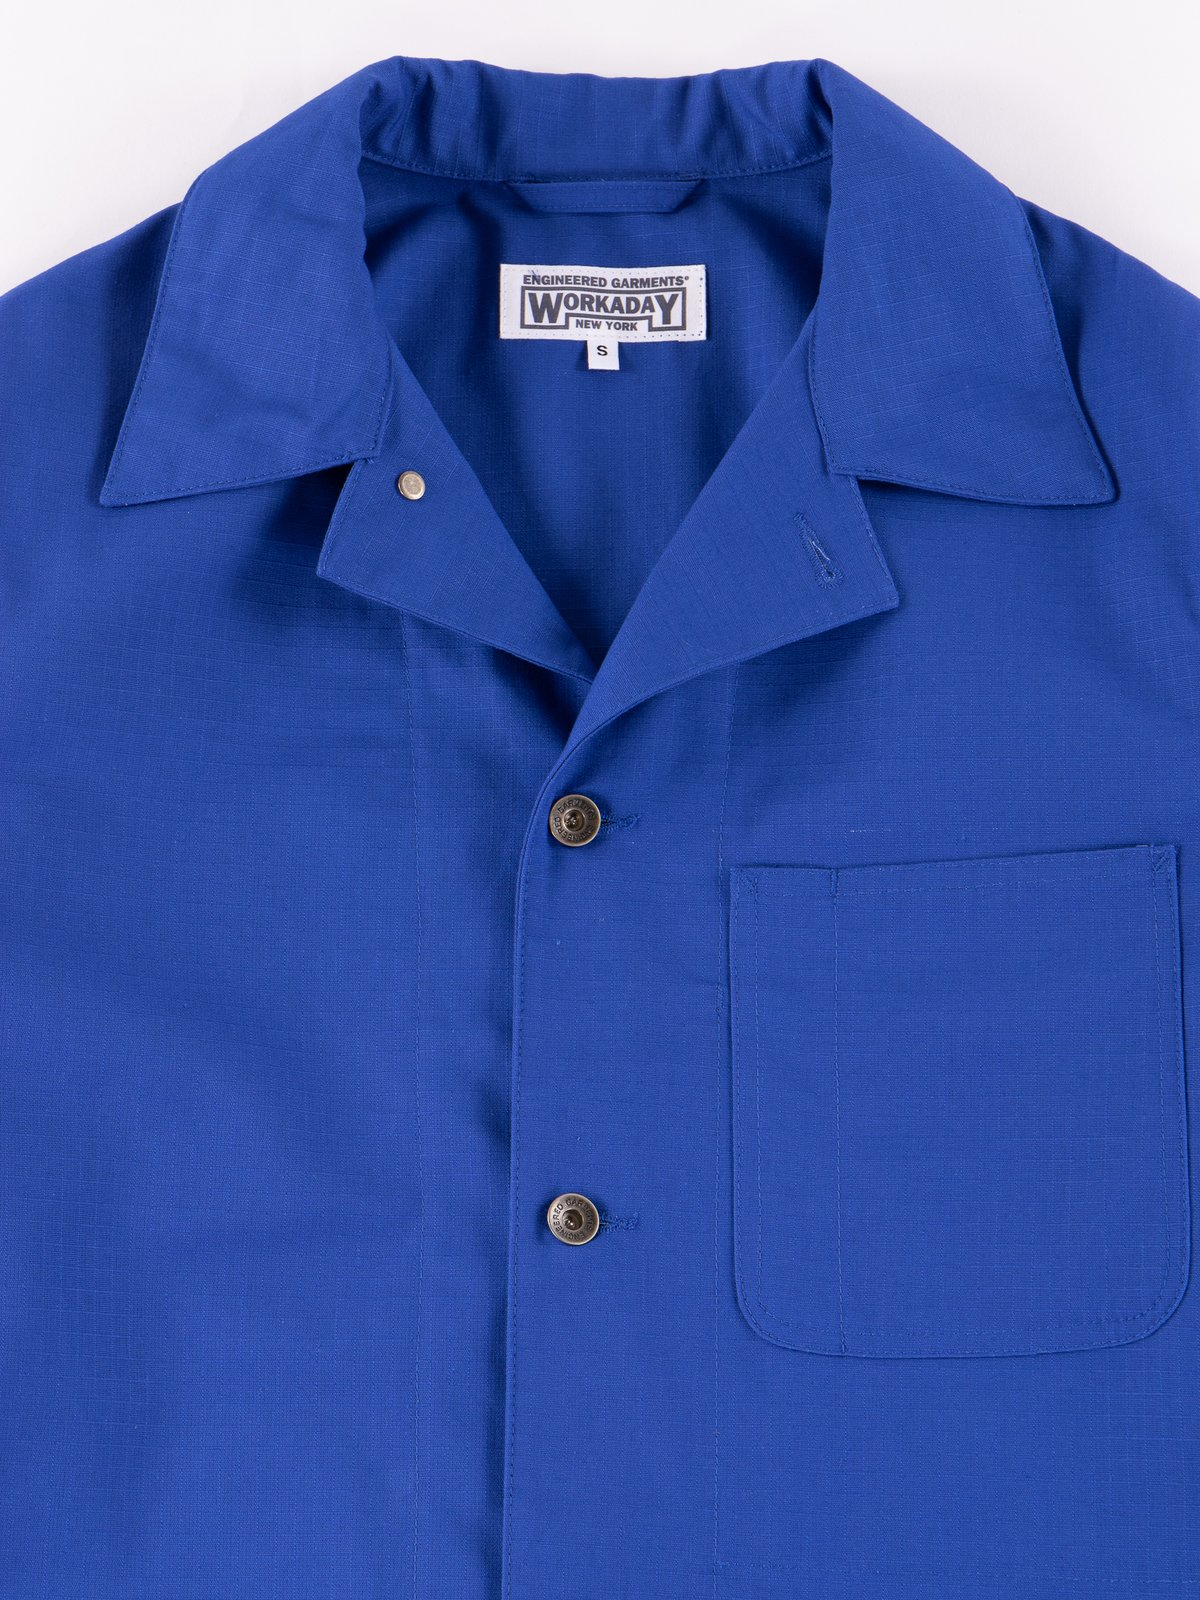 Royal Cotton Ripstop Shop Coat - Image 2